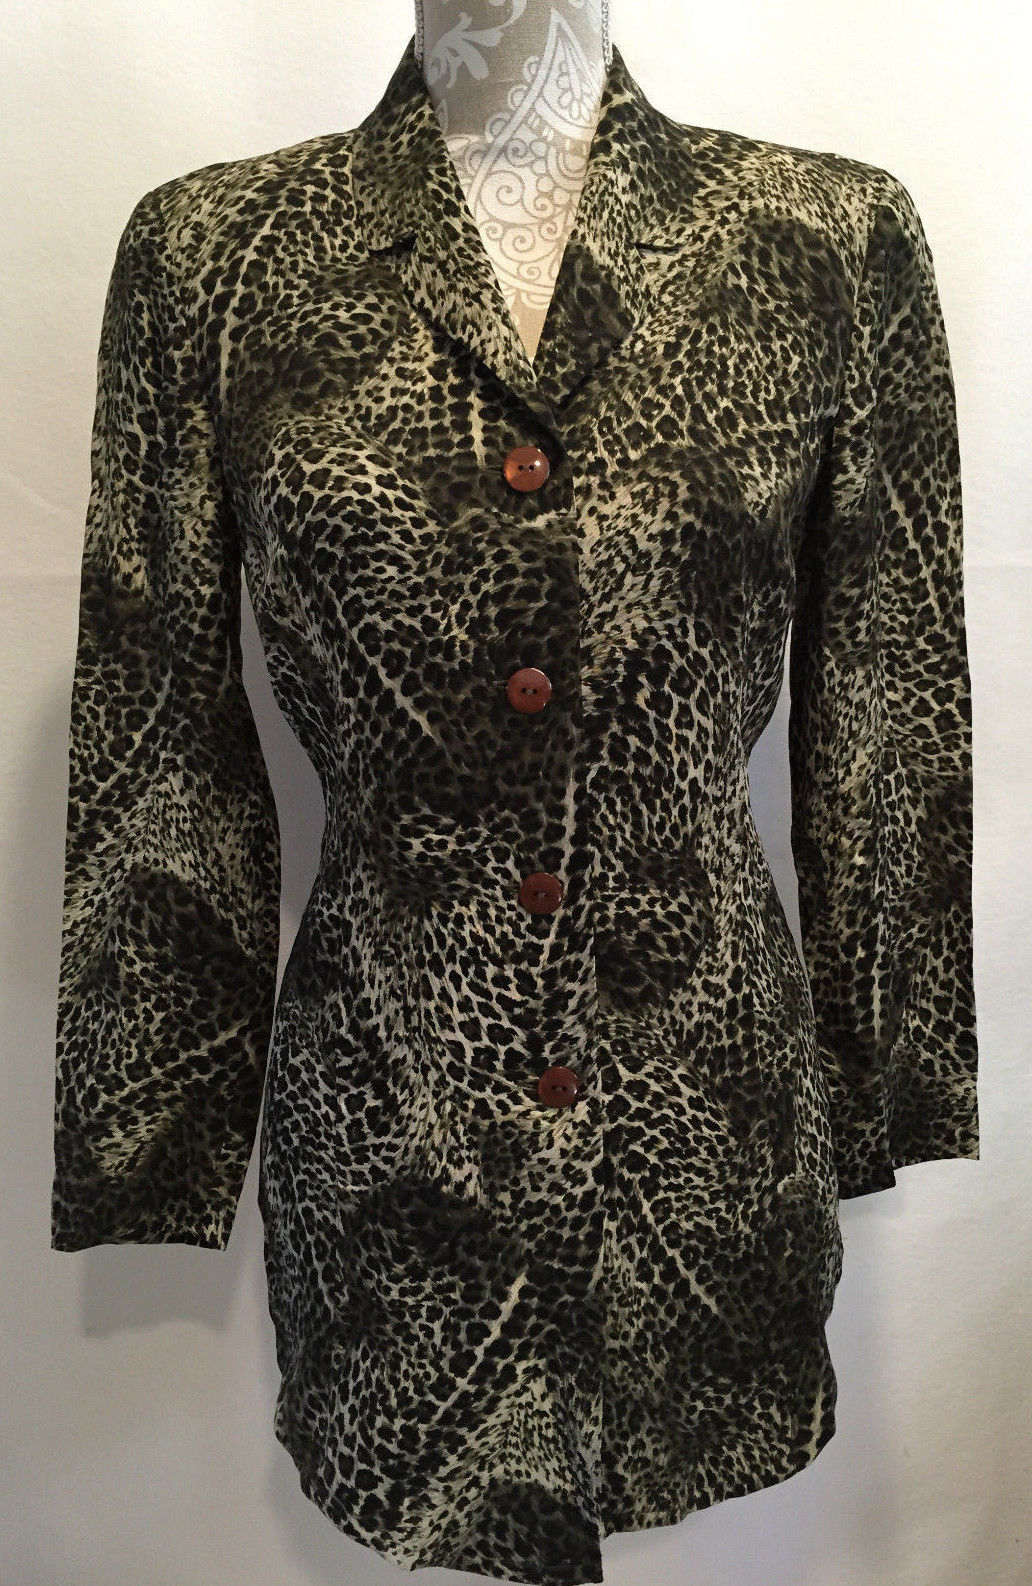 Primary image for Dana Buchman Career Casual Animal Print Button Front Blouse Shirt Top Size 2